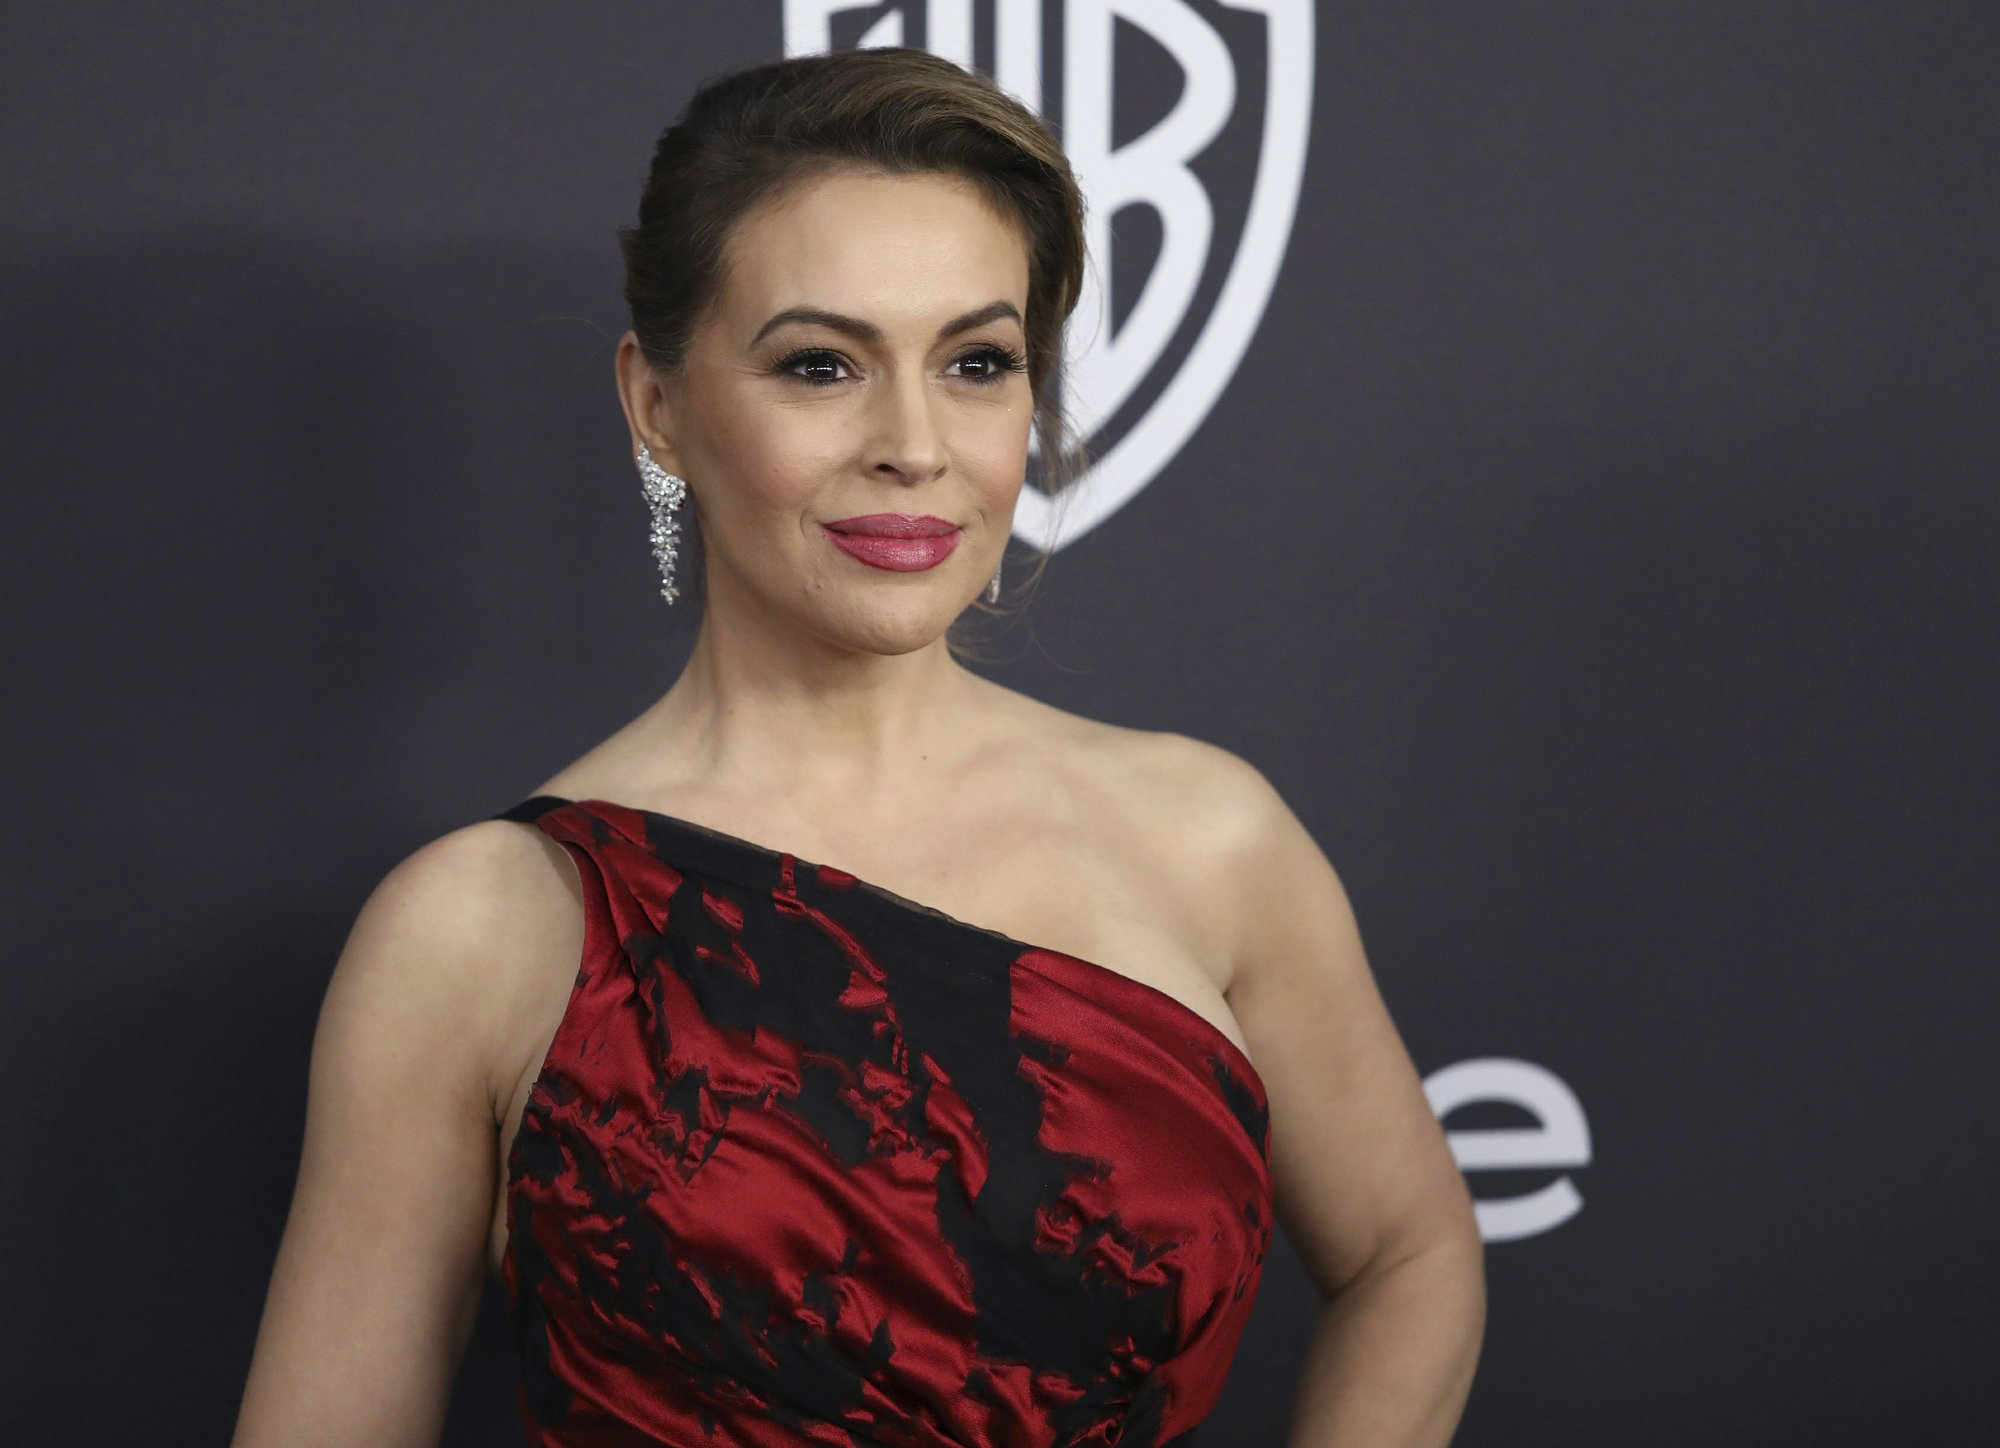 Alyssa Milano calls for sex strike, ignites social media